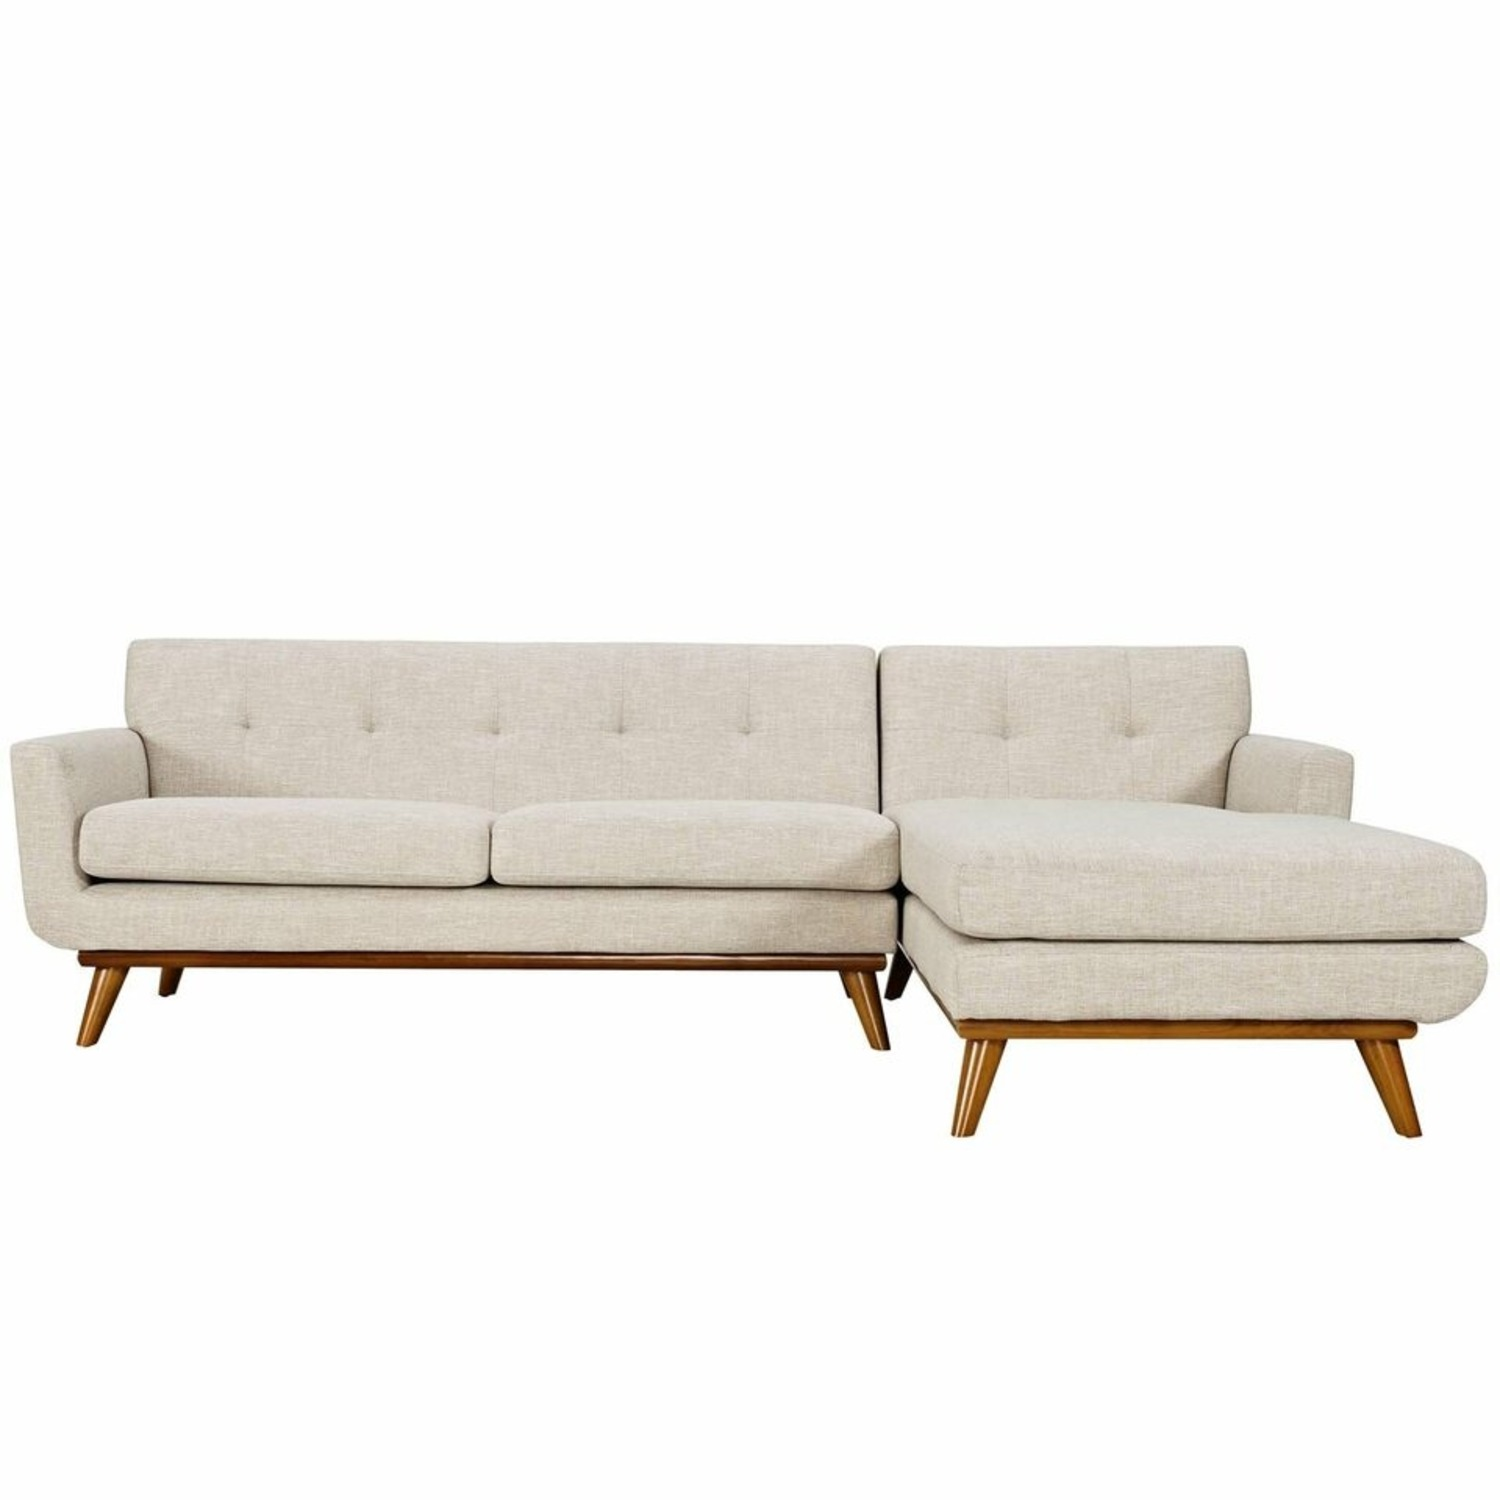 Right-Facing Sectional In Beige Upholstered Fabric - image-1